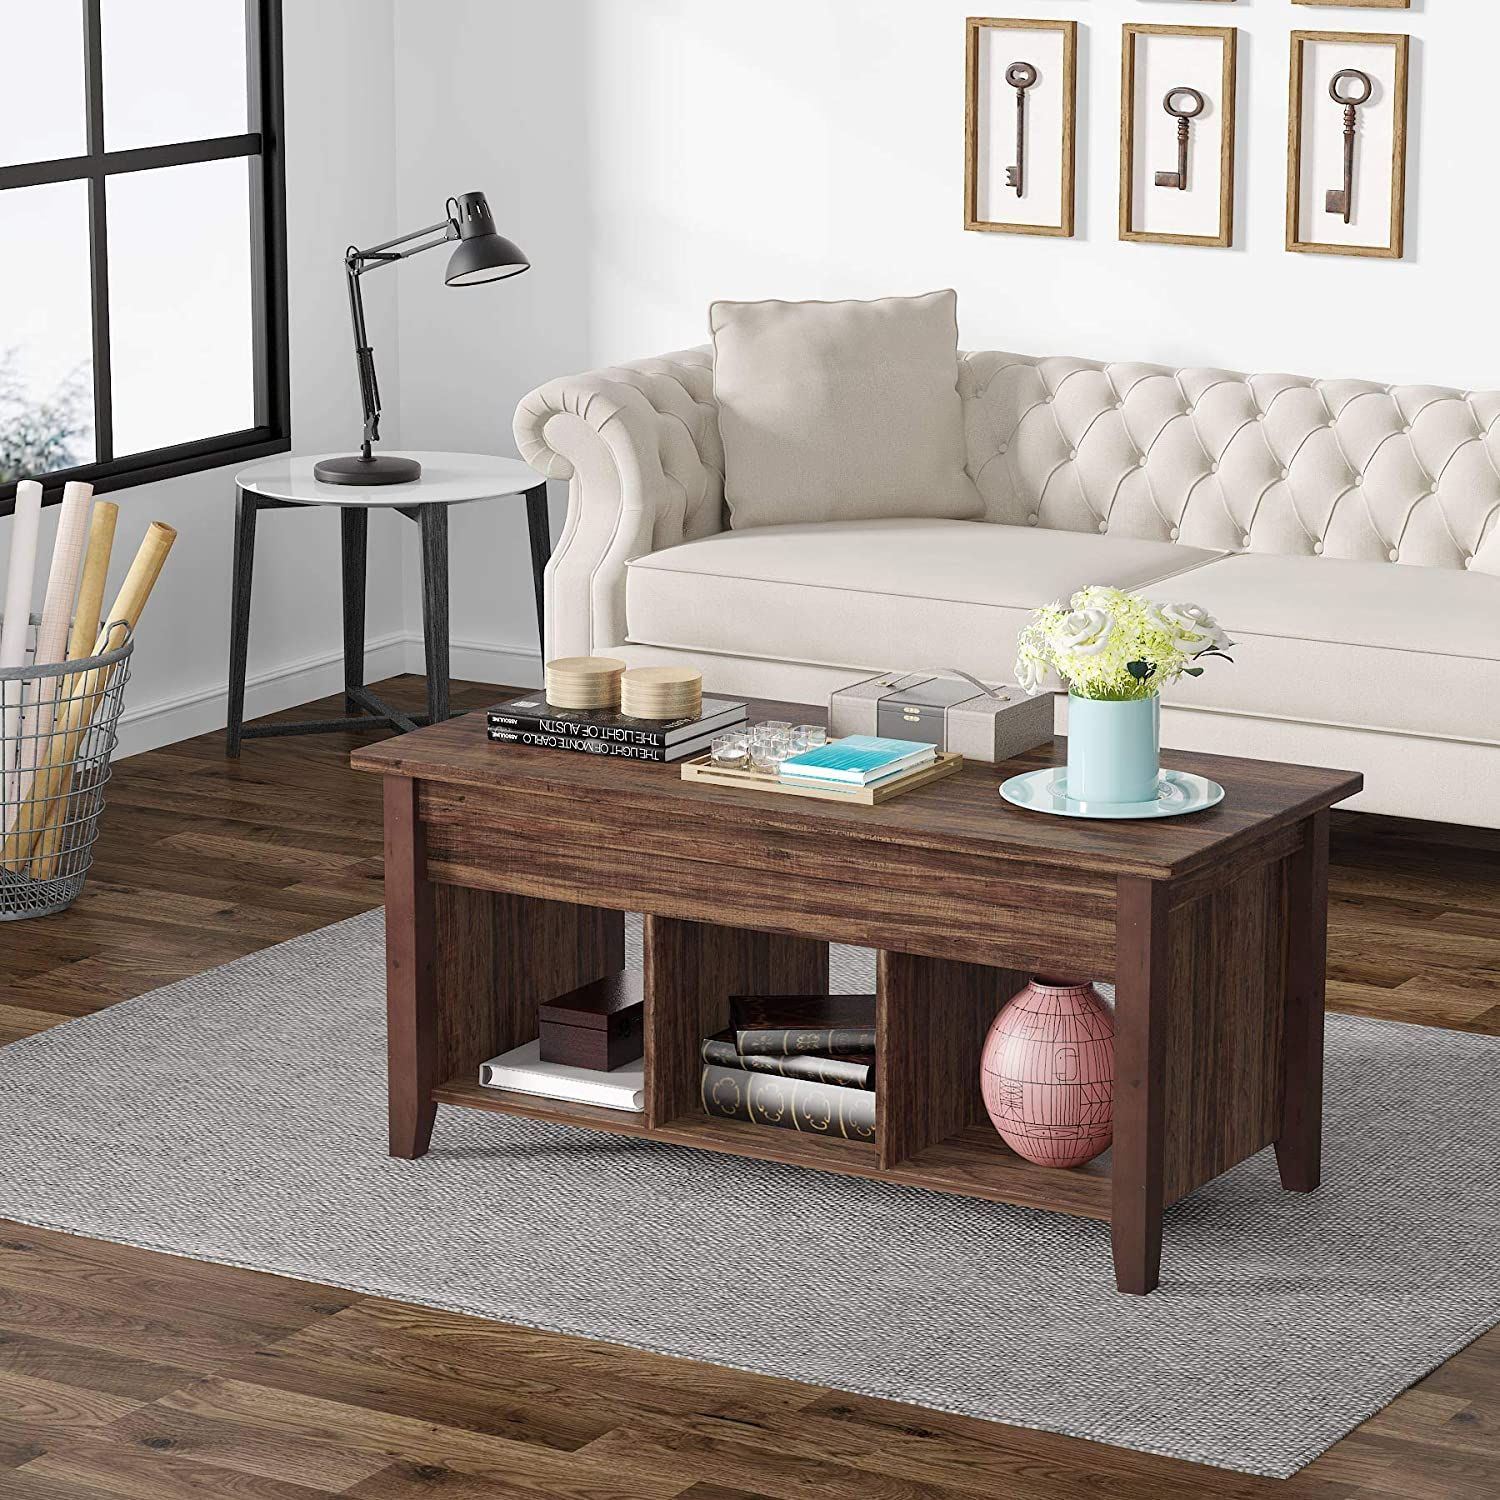 15 Beautiful Lift Top Coffee Tables You Can Buy Cool Things To Buy 247 In 2020 White Coffee Table Modern Wood Lift Top Coffee Table Lift Top Coffee Table [ 1500 x 1500 Pixel ]